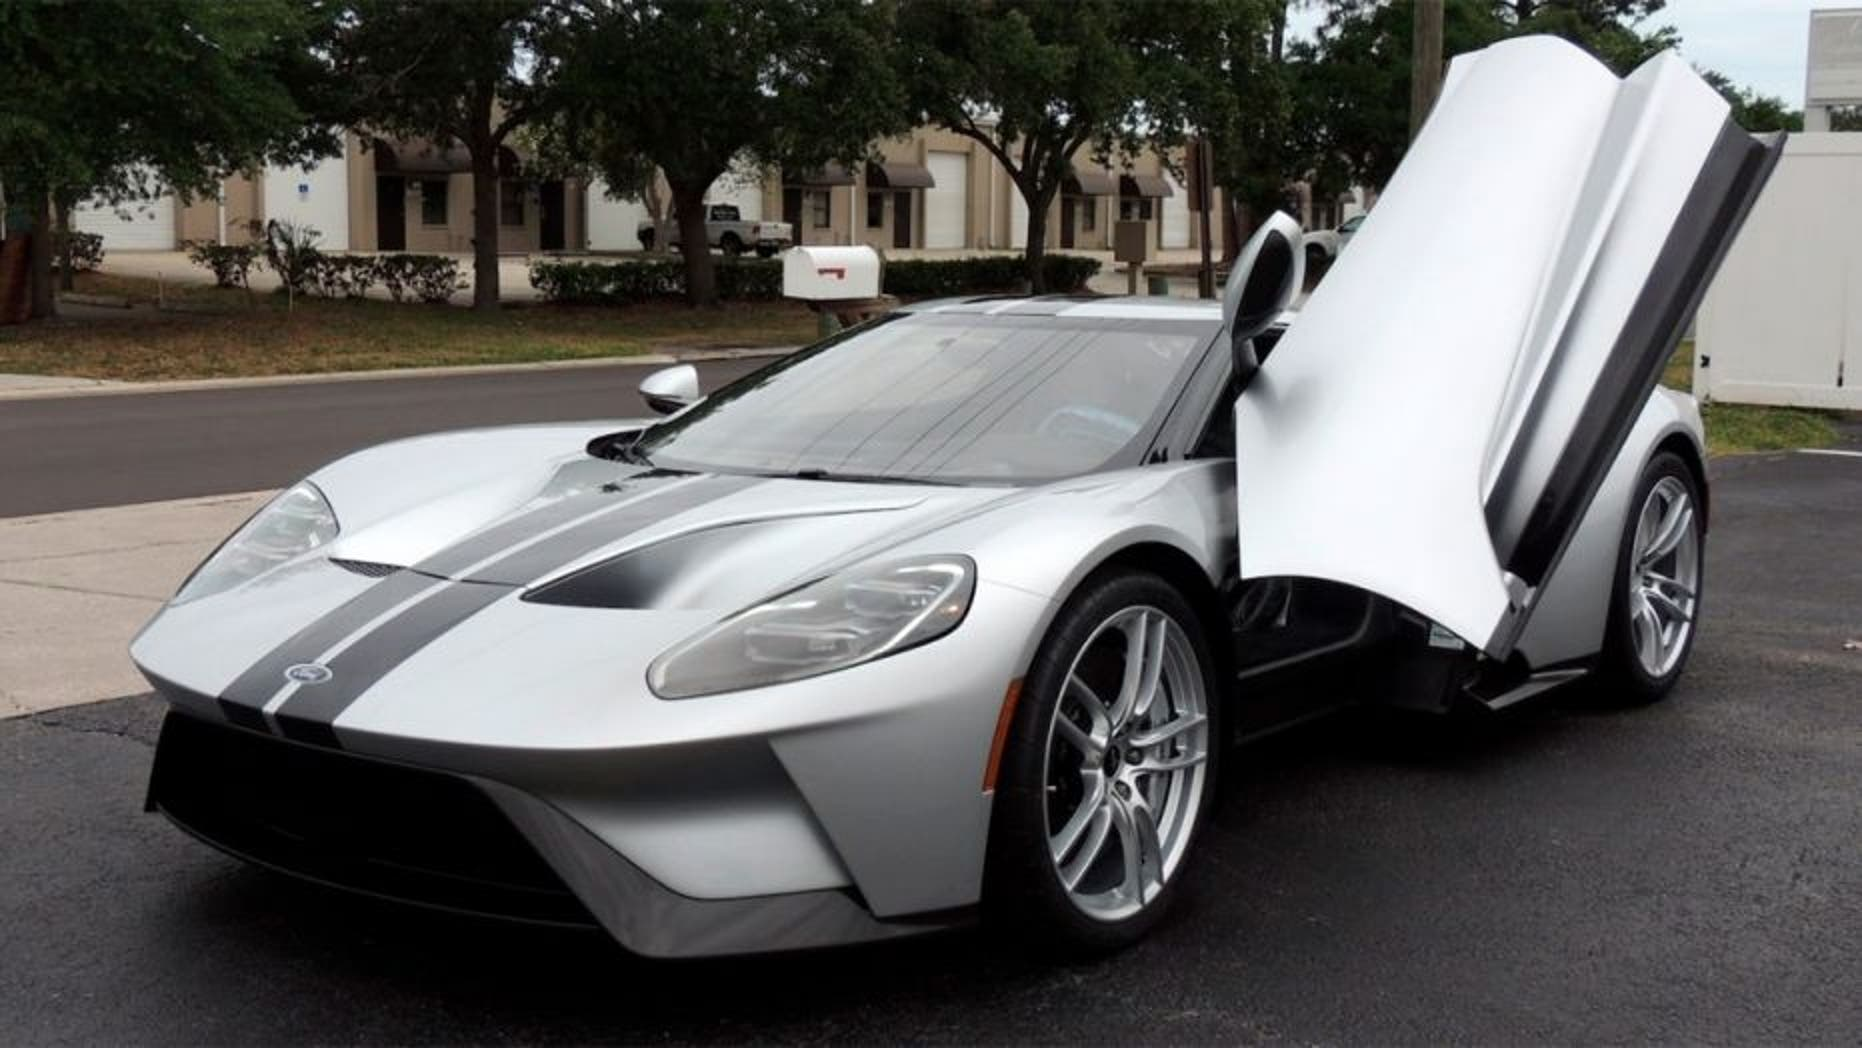 Buyers of the 450000 supercar are required to sign a contract that says they won